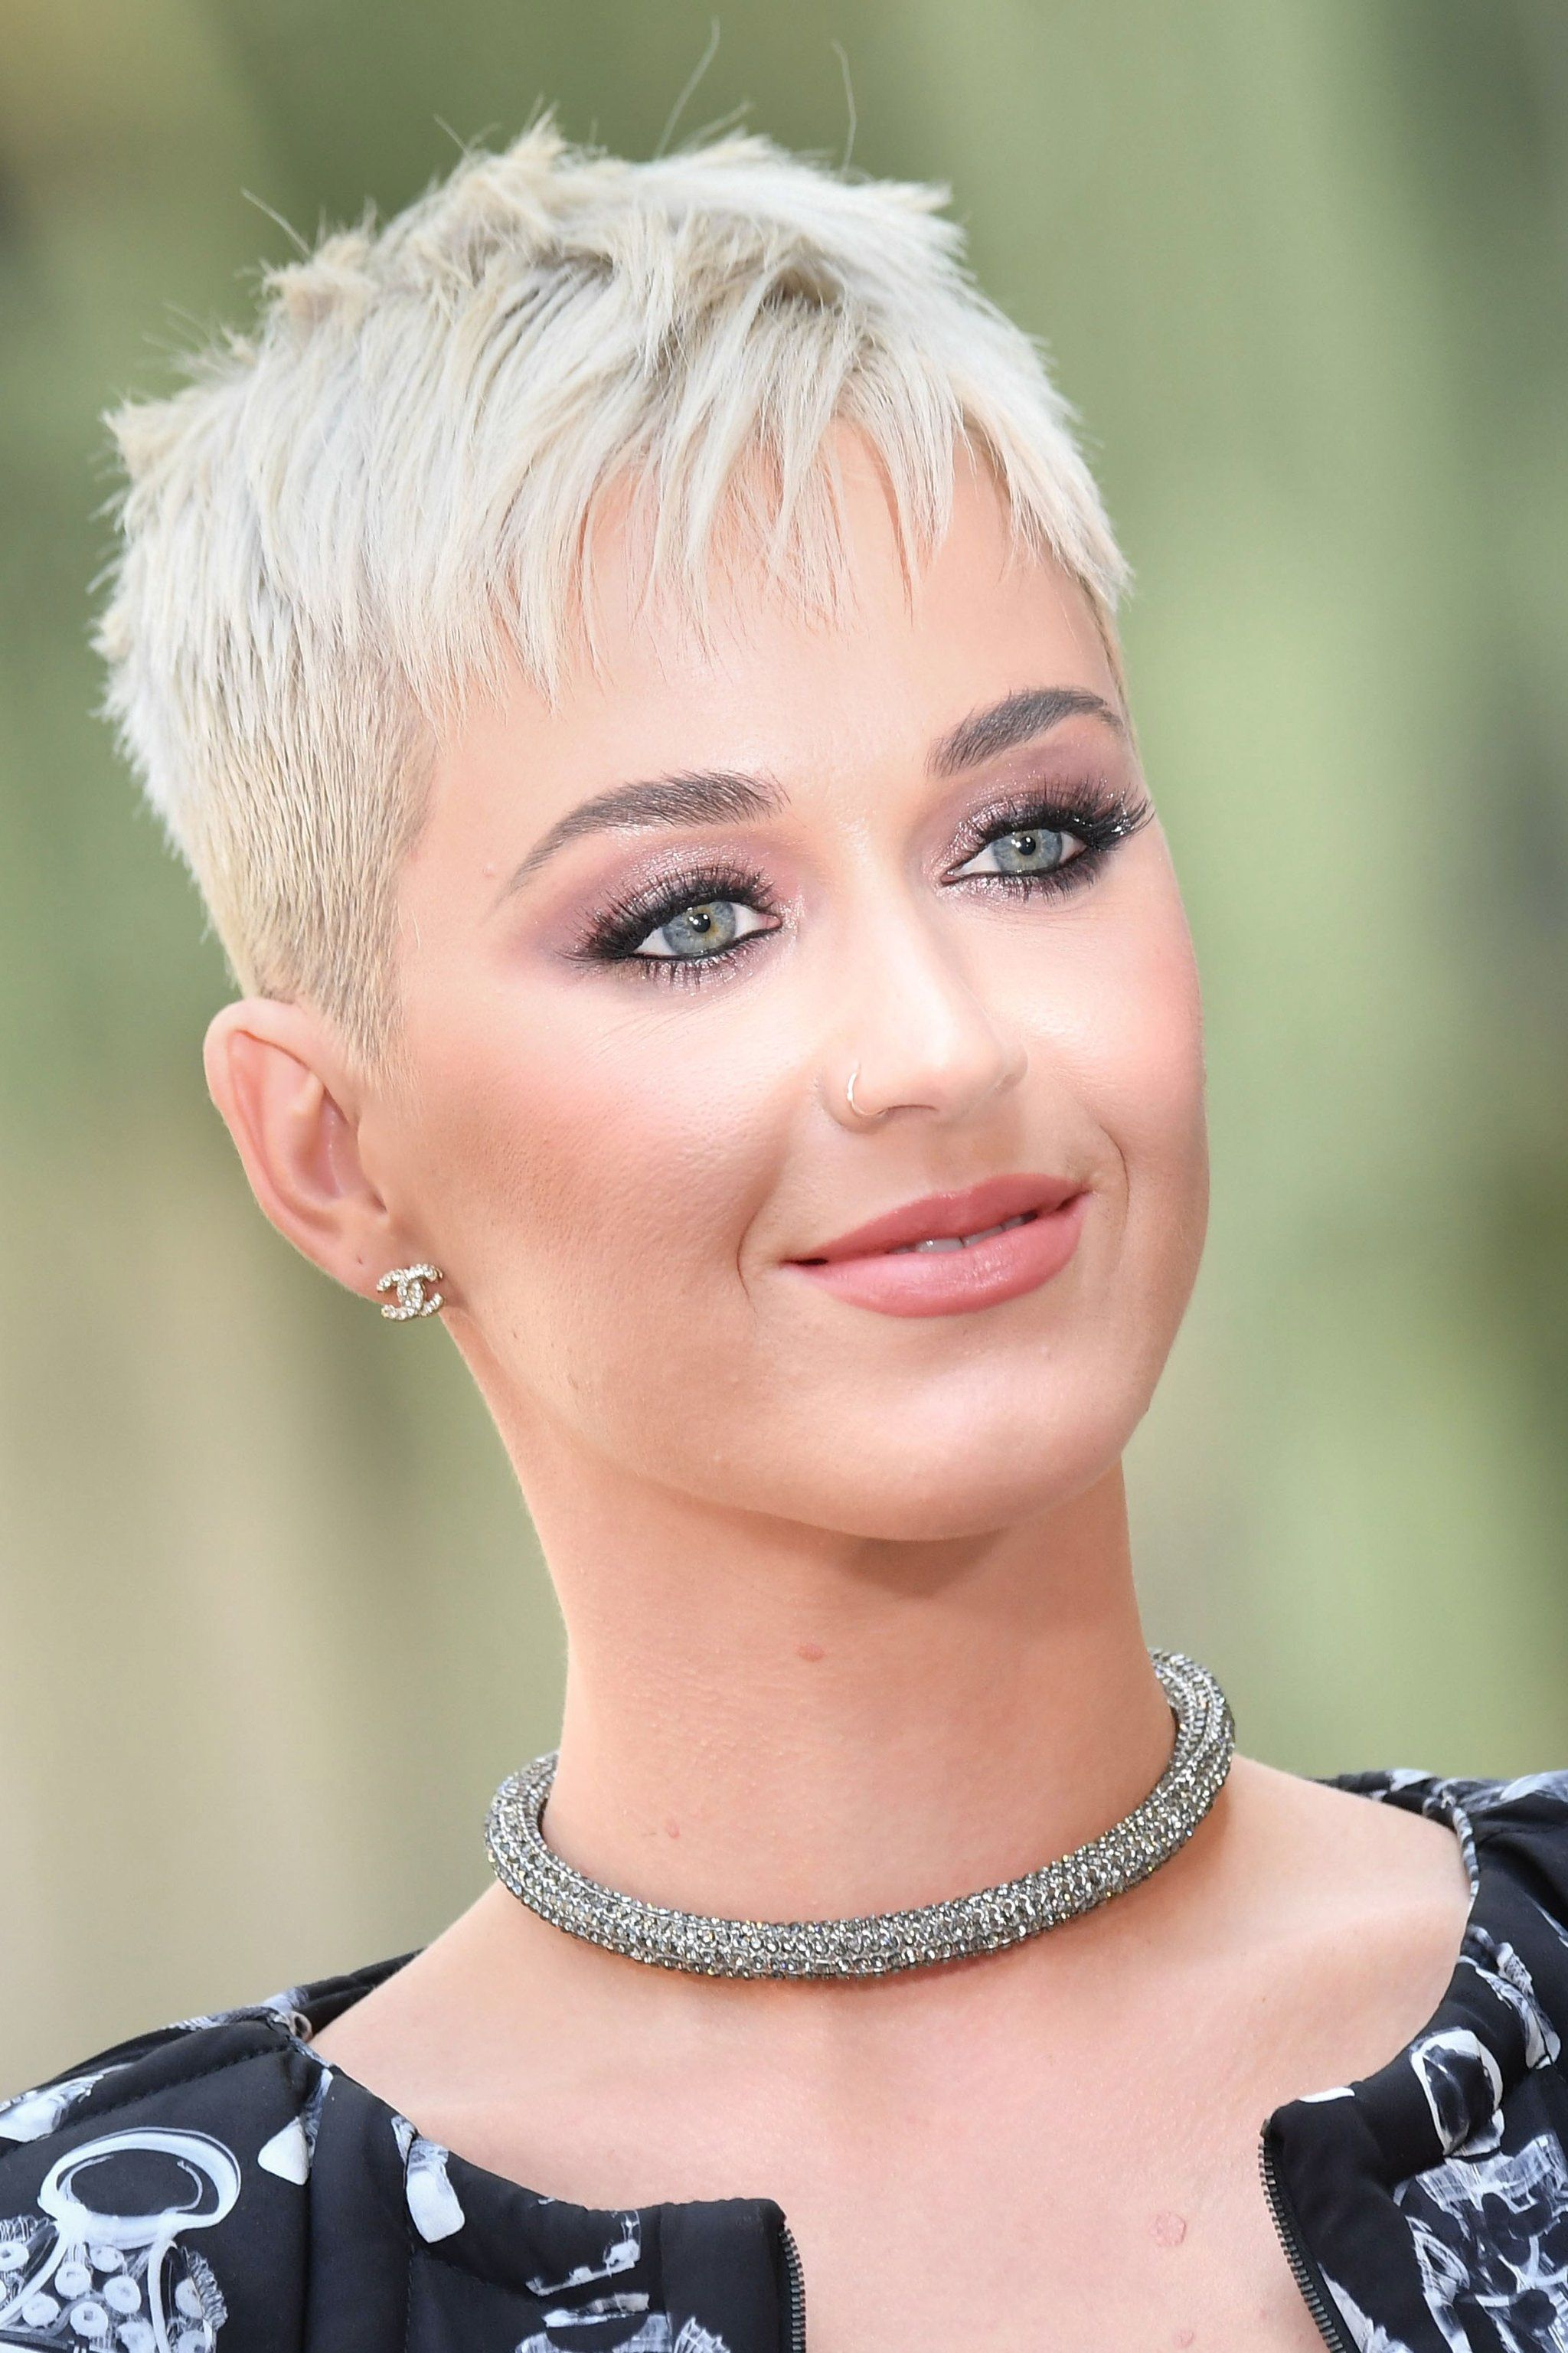 Katy Perry Feels Liberated by Short Hair: I Have Surrendered to My 30s